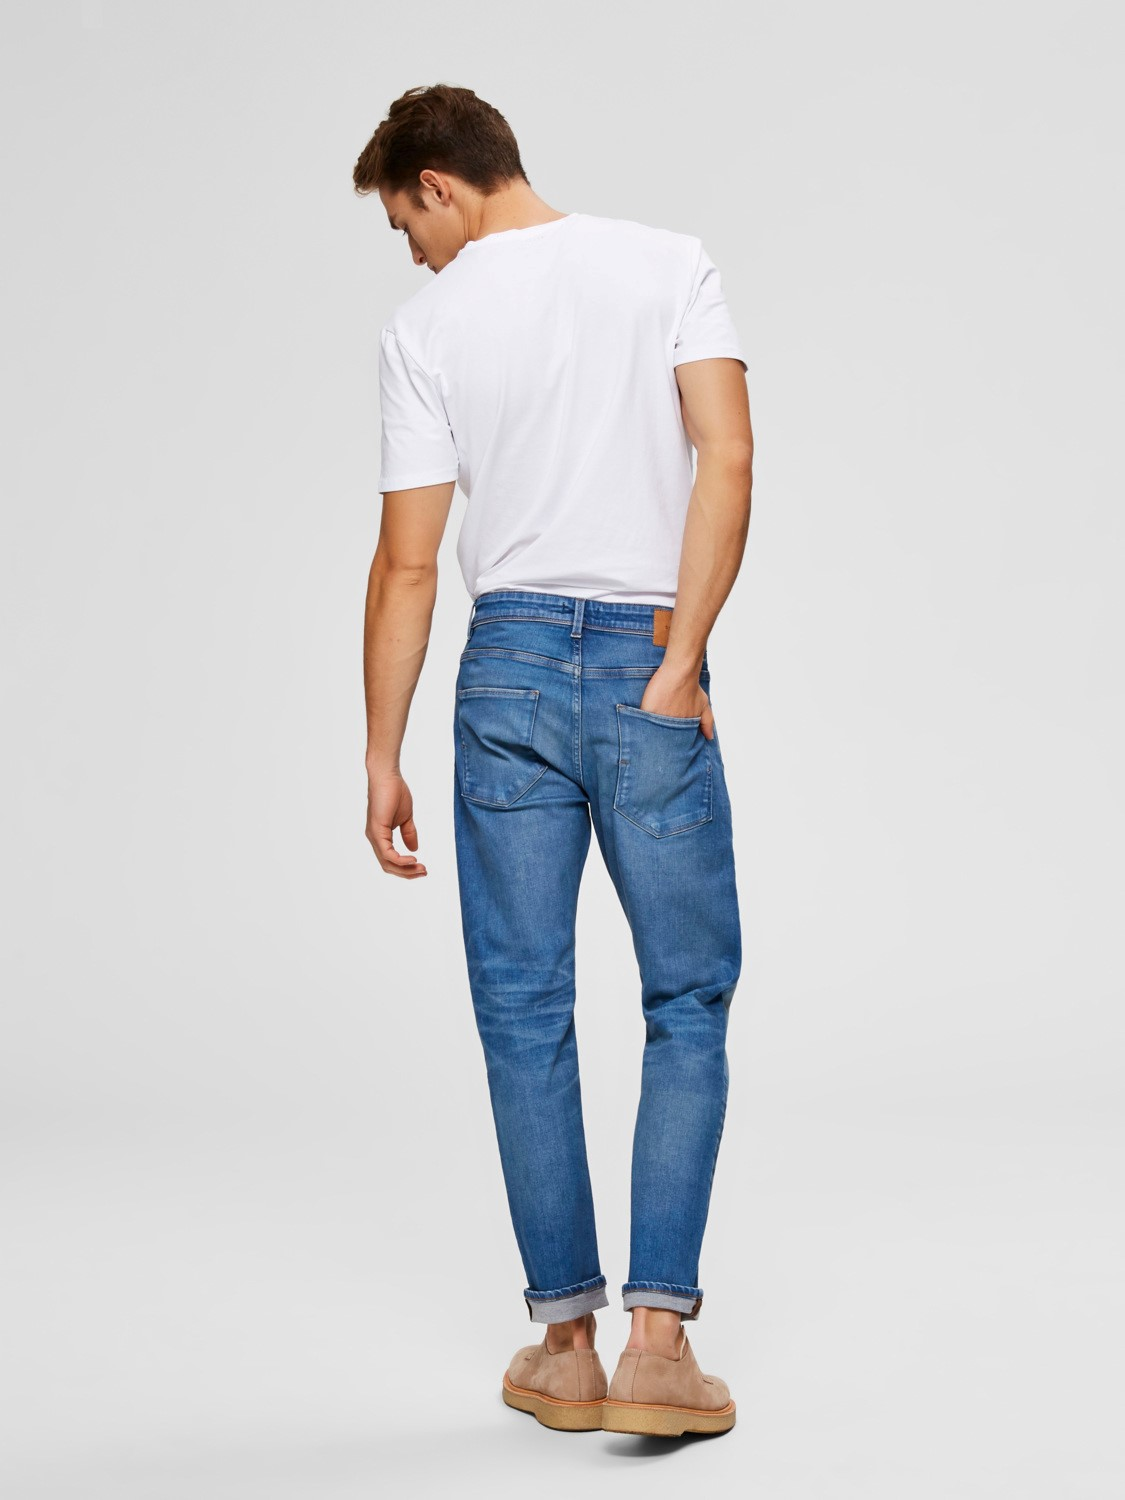 Selected Jeans - Leon Light blue | Gate36 Hobro